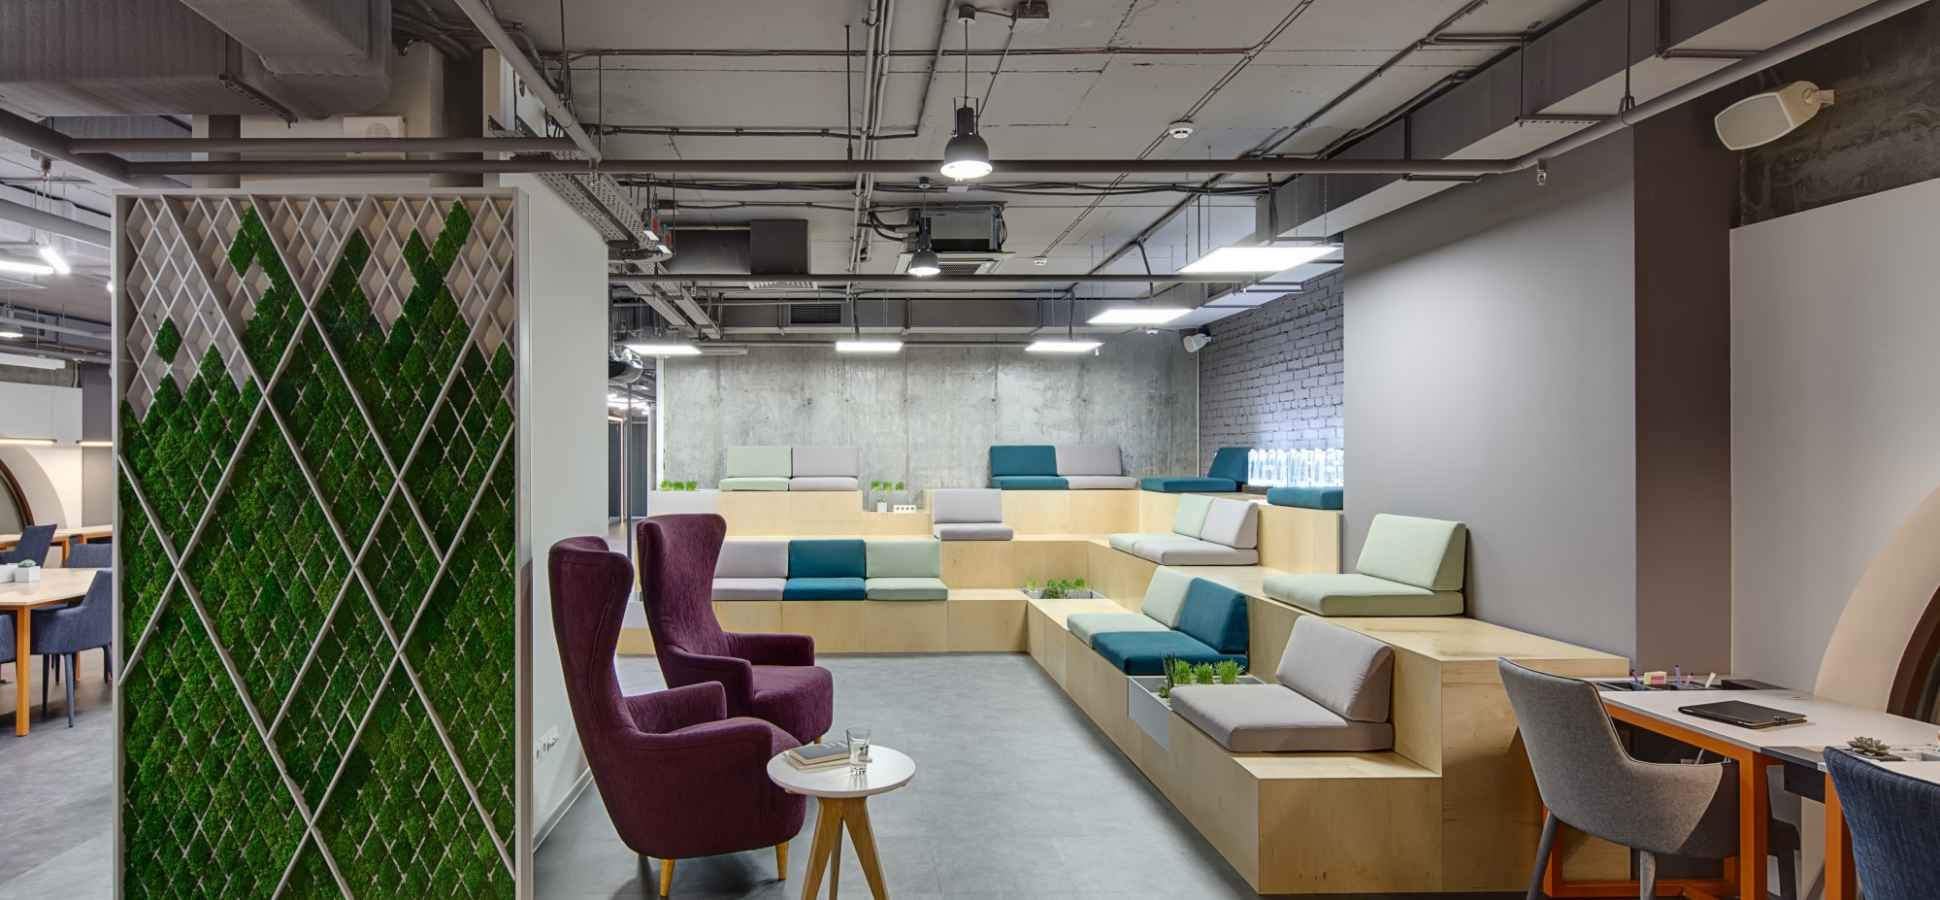 Want to Make Employees Happy? Make Your Office Like a Co-Working Space